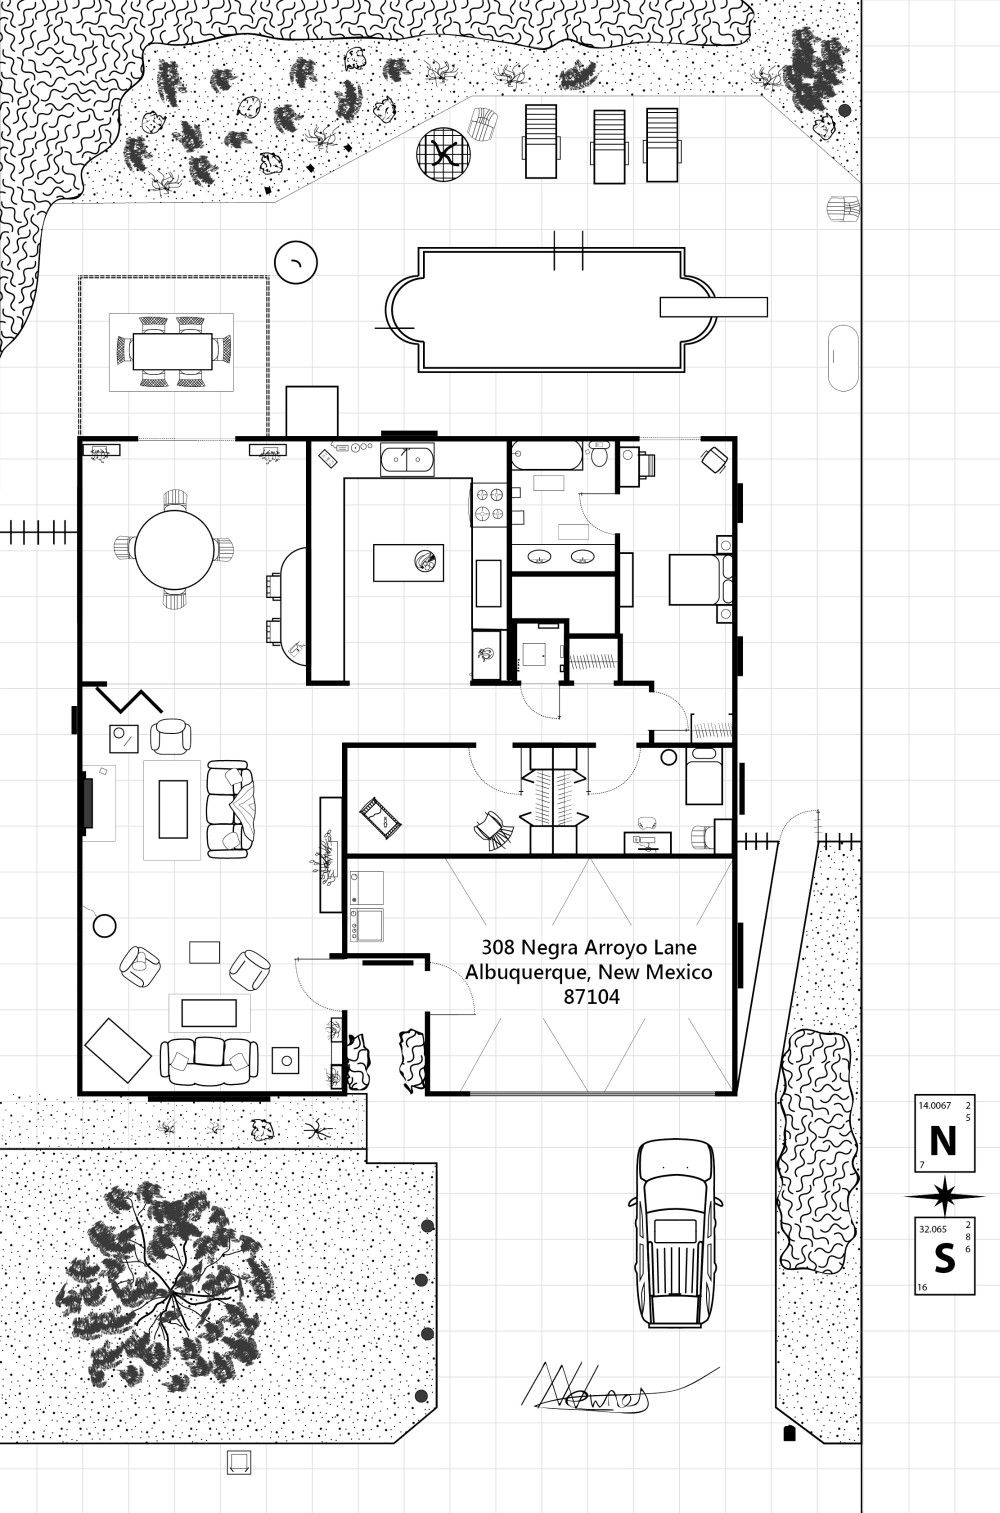 Pin By Nұrzhan Sejtalin On My House White House Plans House Floor Plans Floor Plans